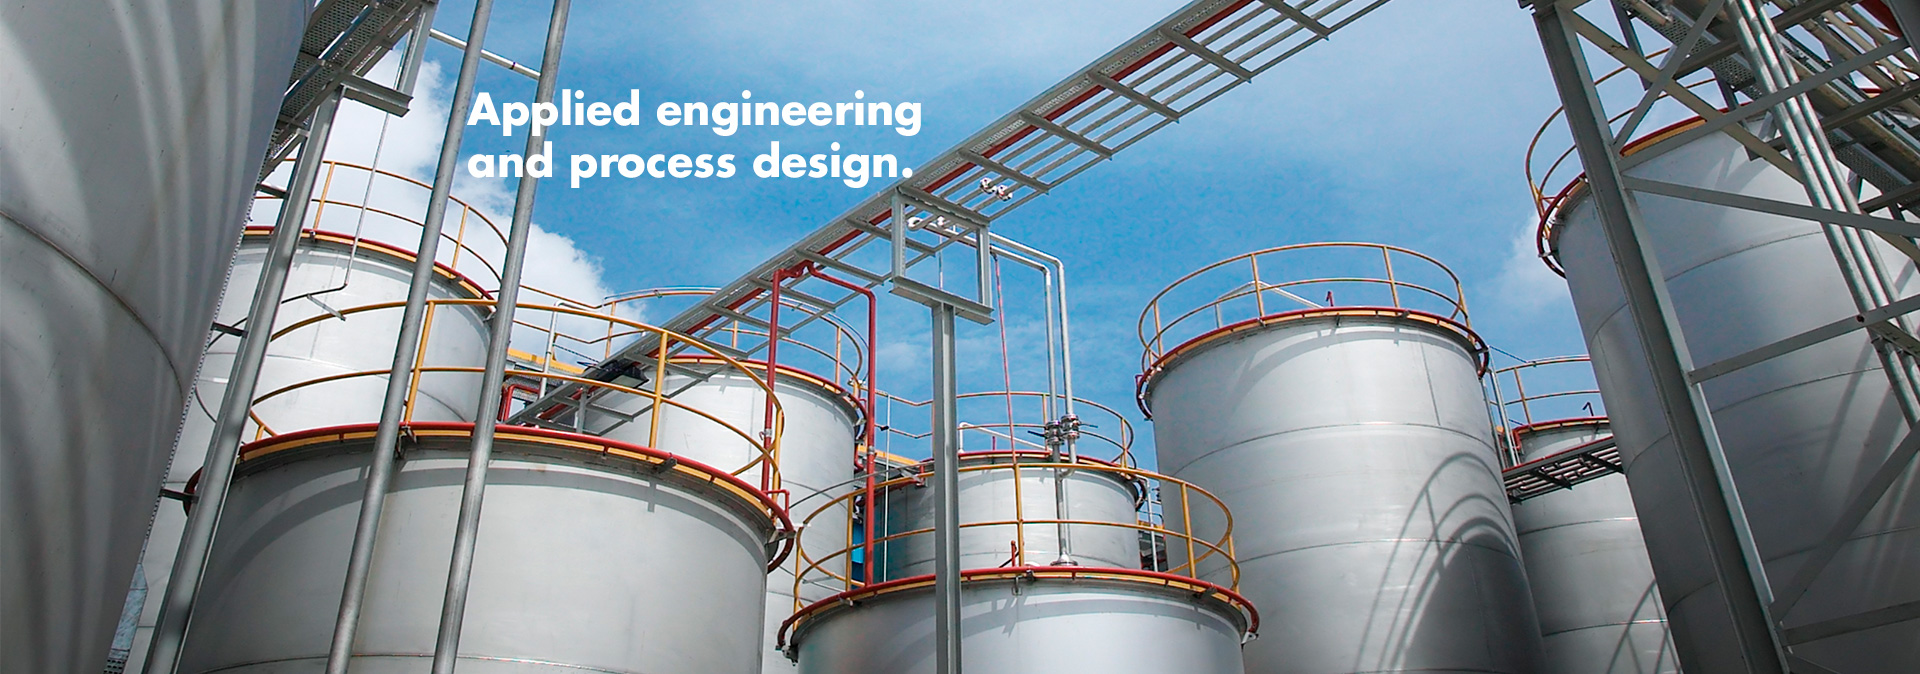 Applied engineering and design